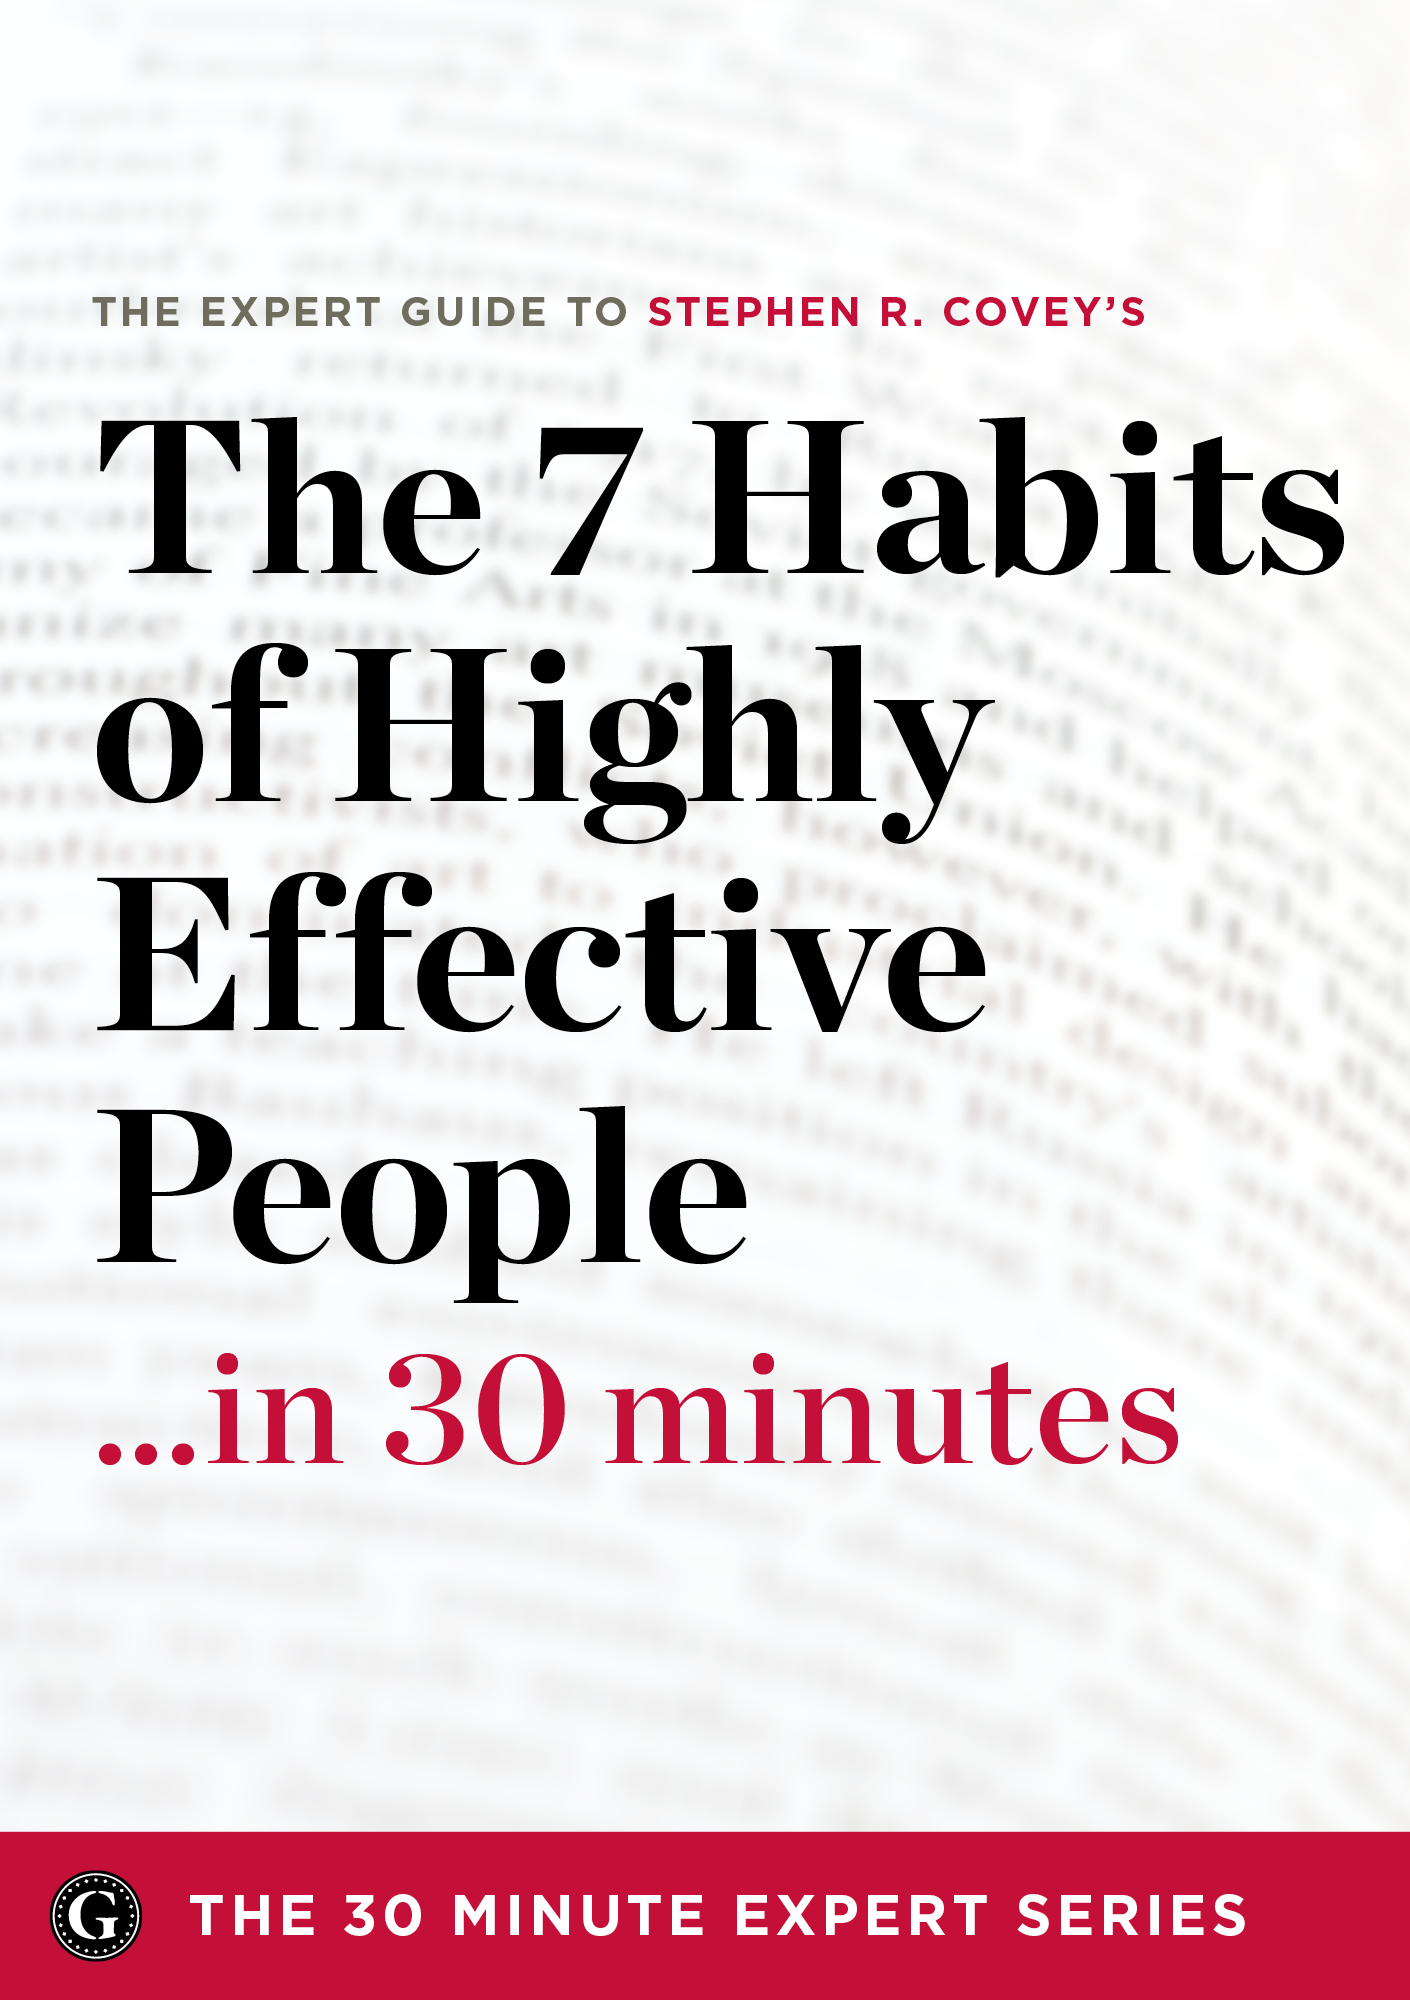 The 7 Habits of Highly Effective People in 30 Minutes – The Expert Guide to Stephen R. Covey's Critically Acclaimed Book